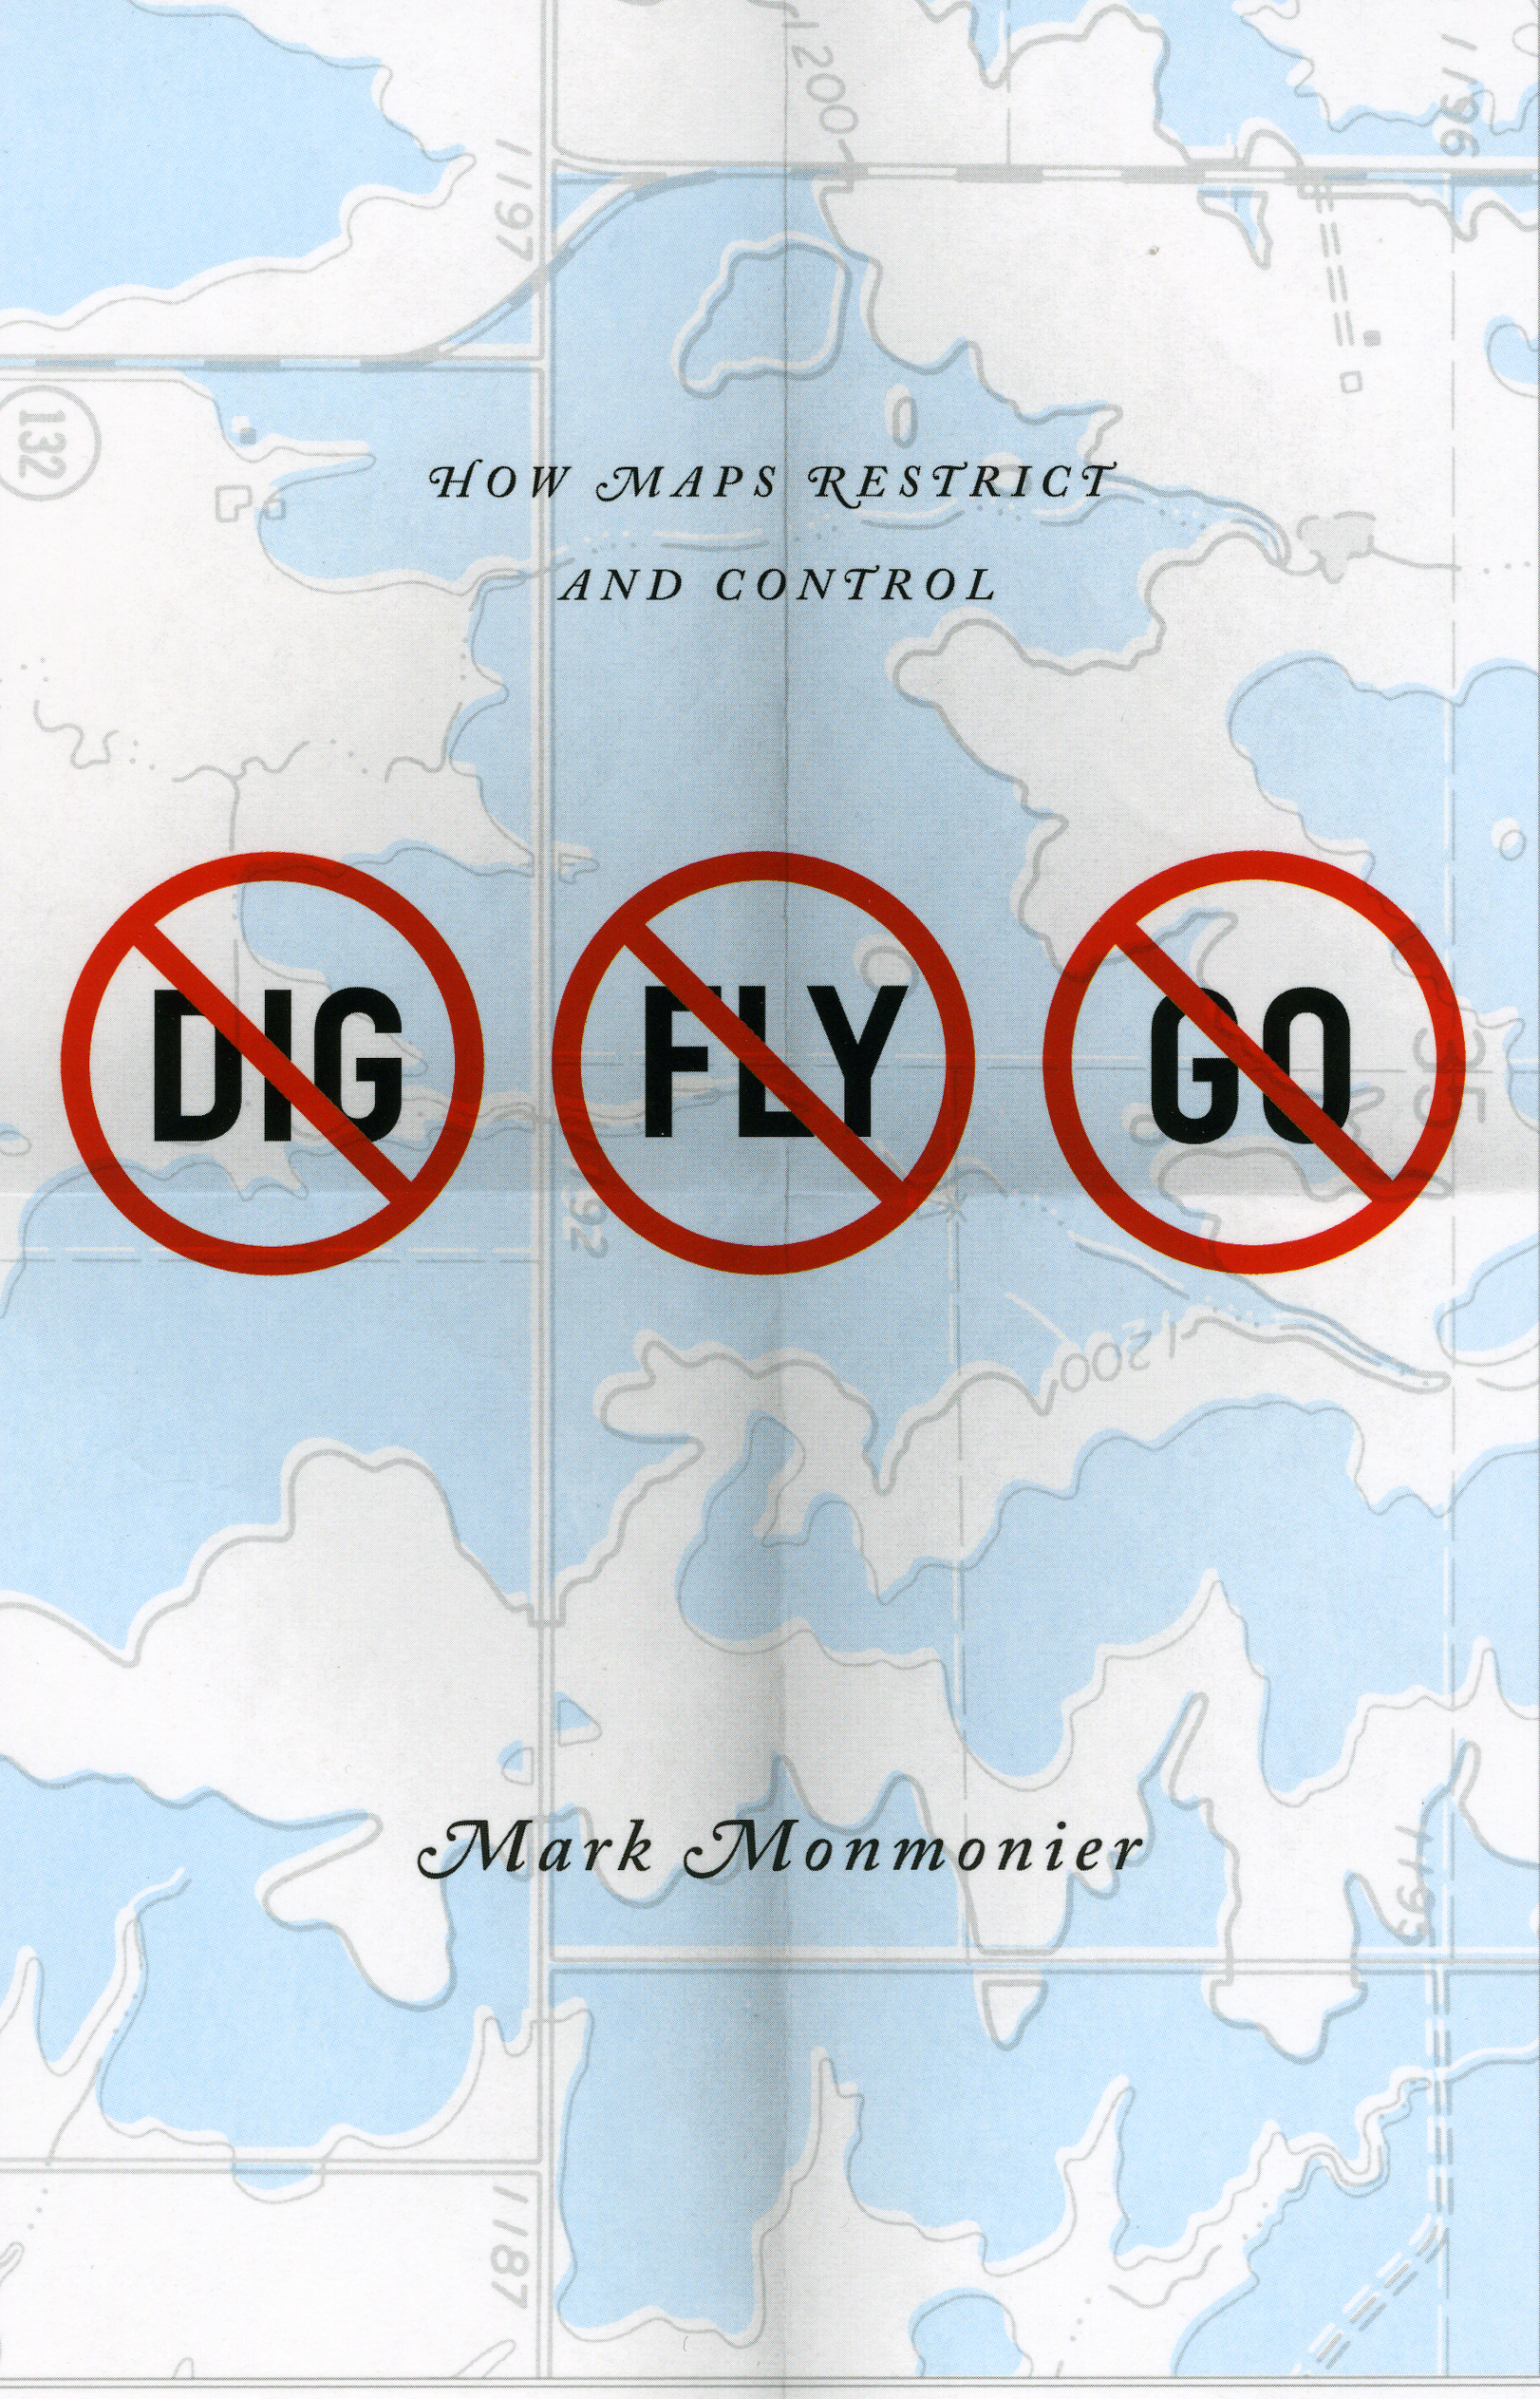 Free e-book today: Monmonier's No Dig, No Fly, No Go